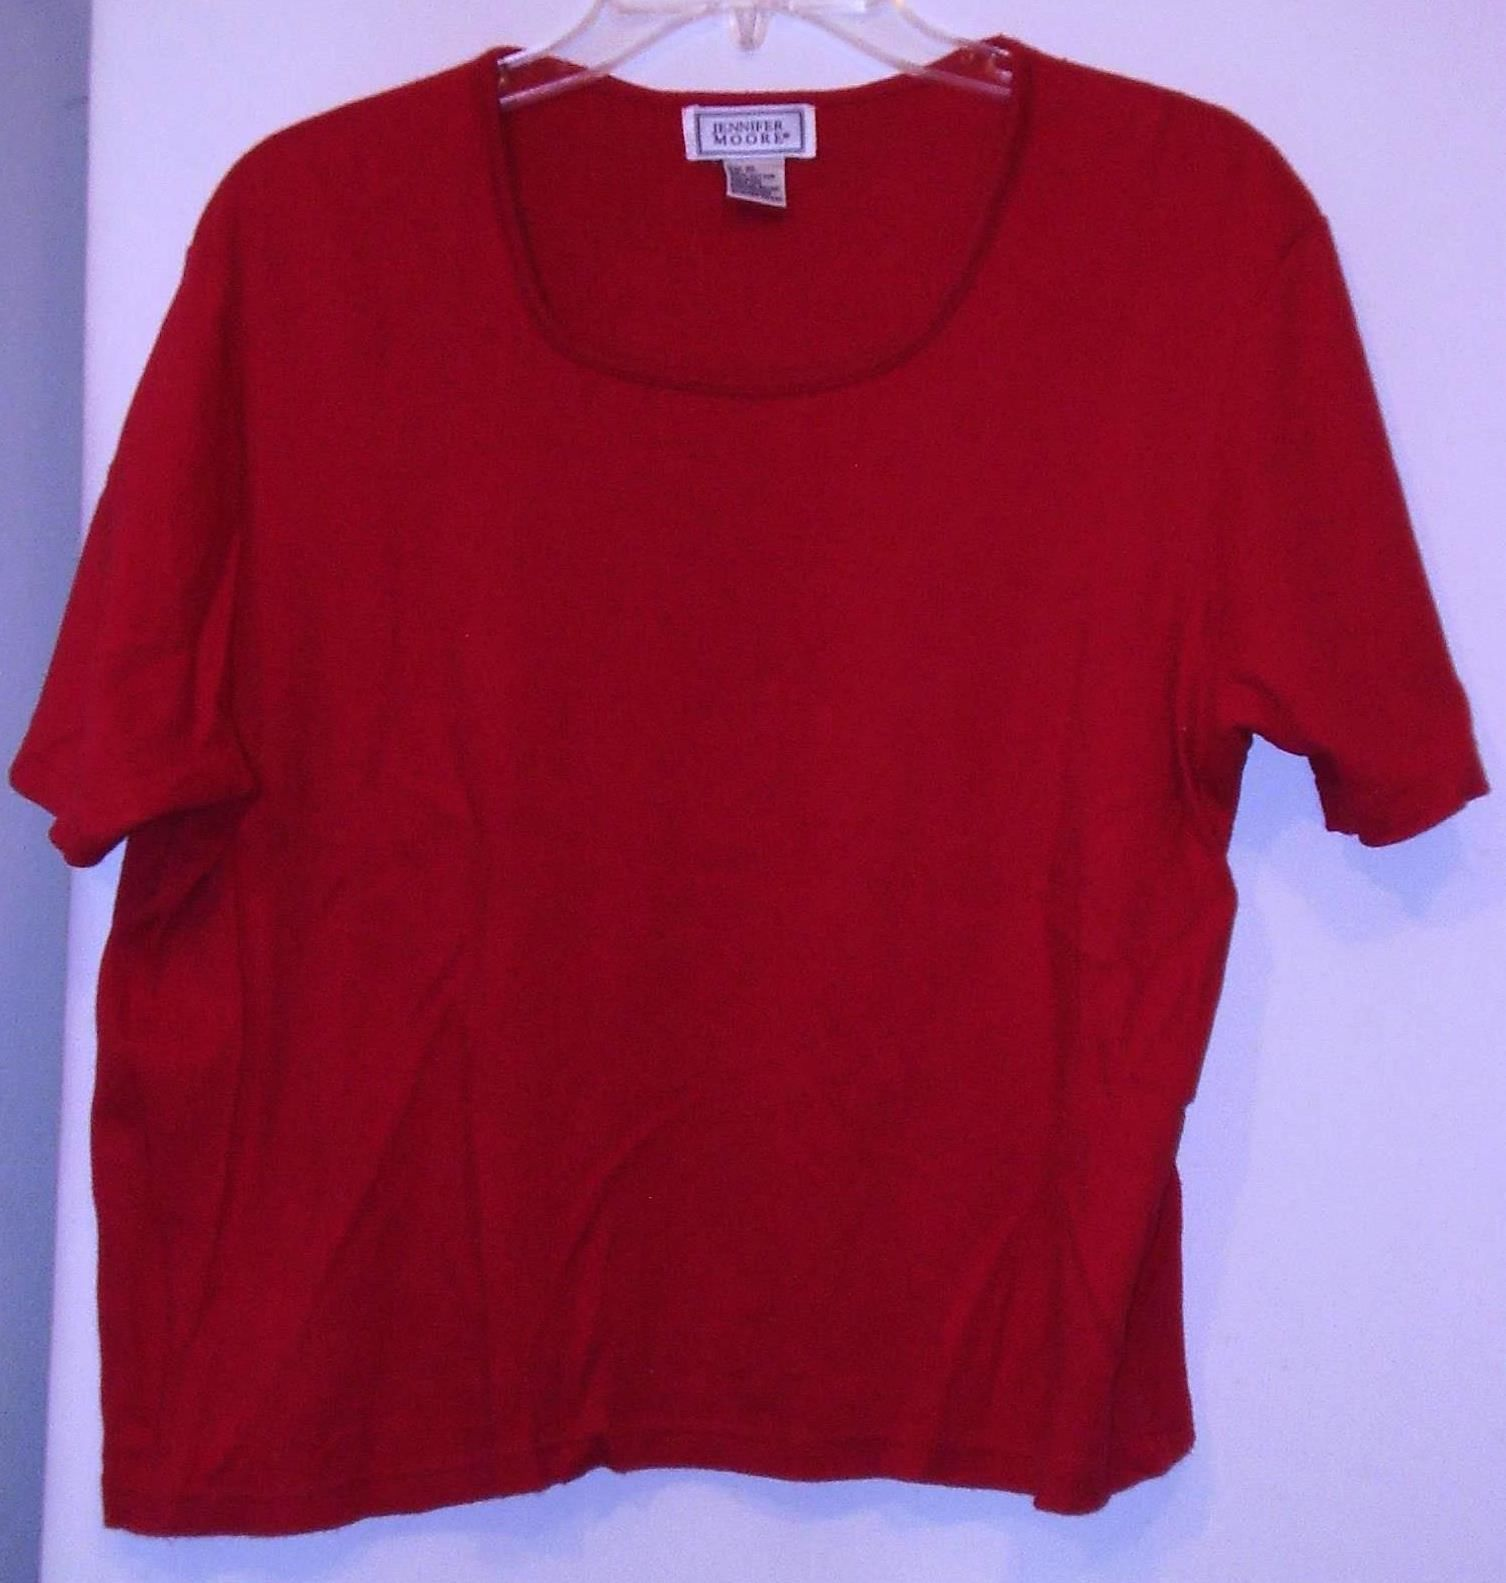 Primary image for JENNIFER MOORE * T-SHIRT * RED - 100% COTTON - EXTRA LARGE - SHORT SLEEVES